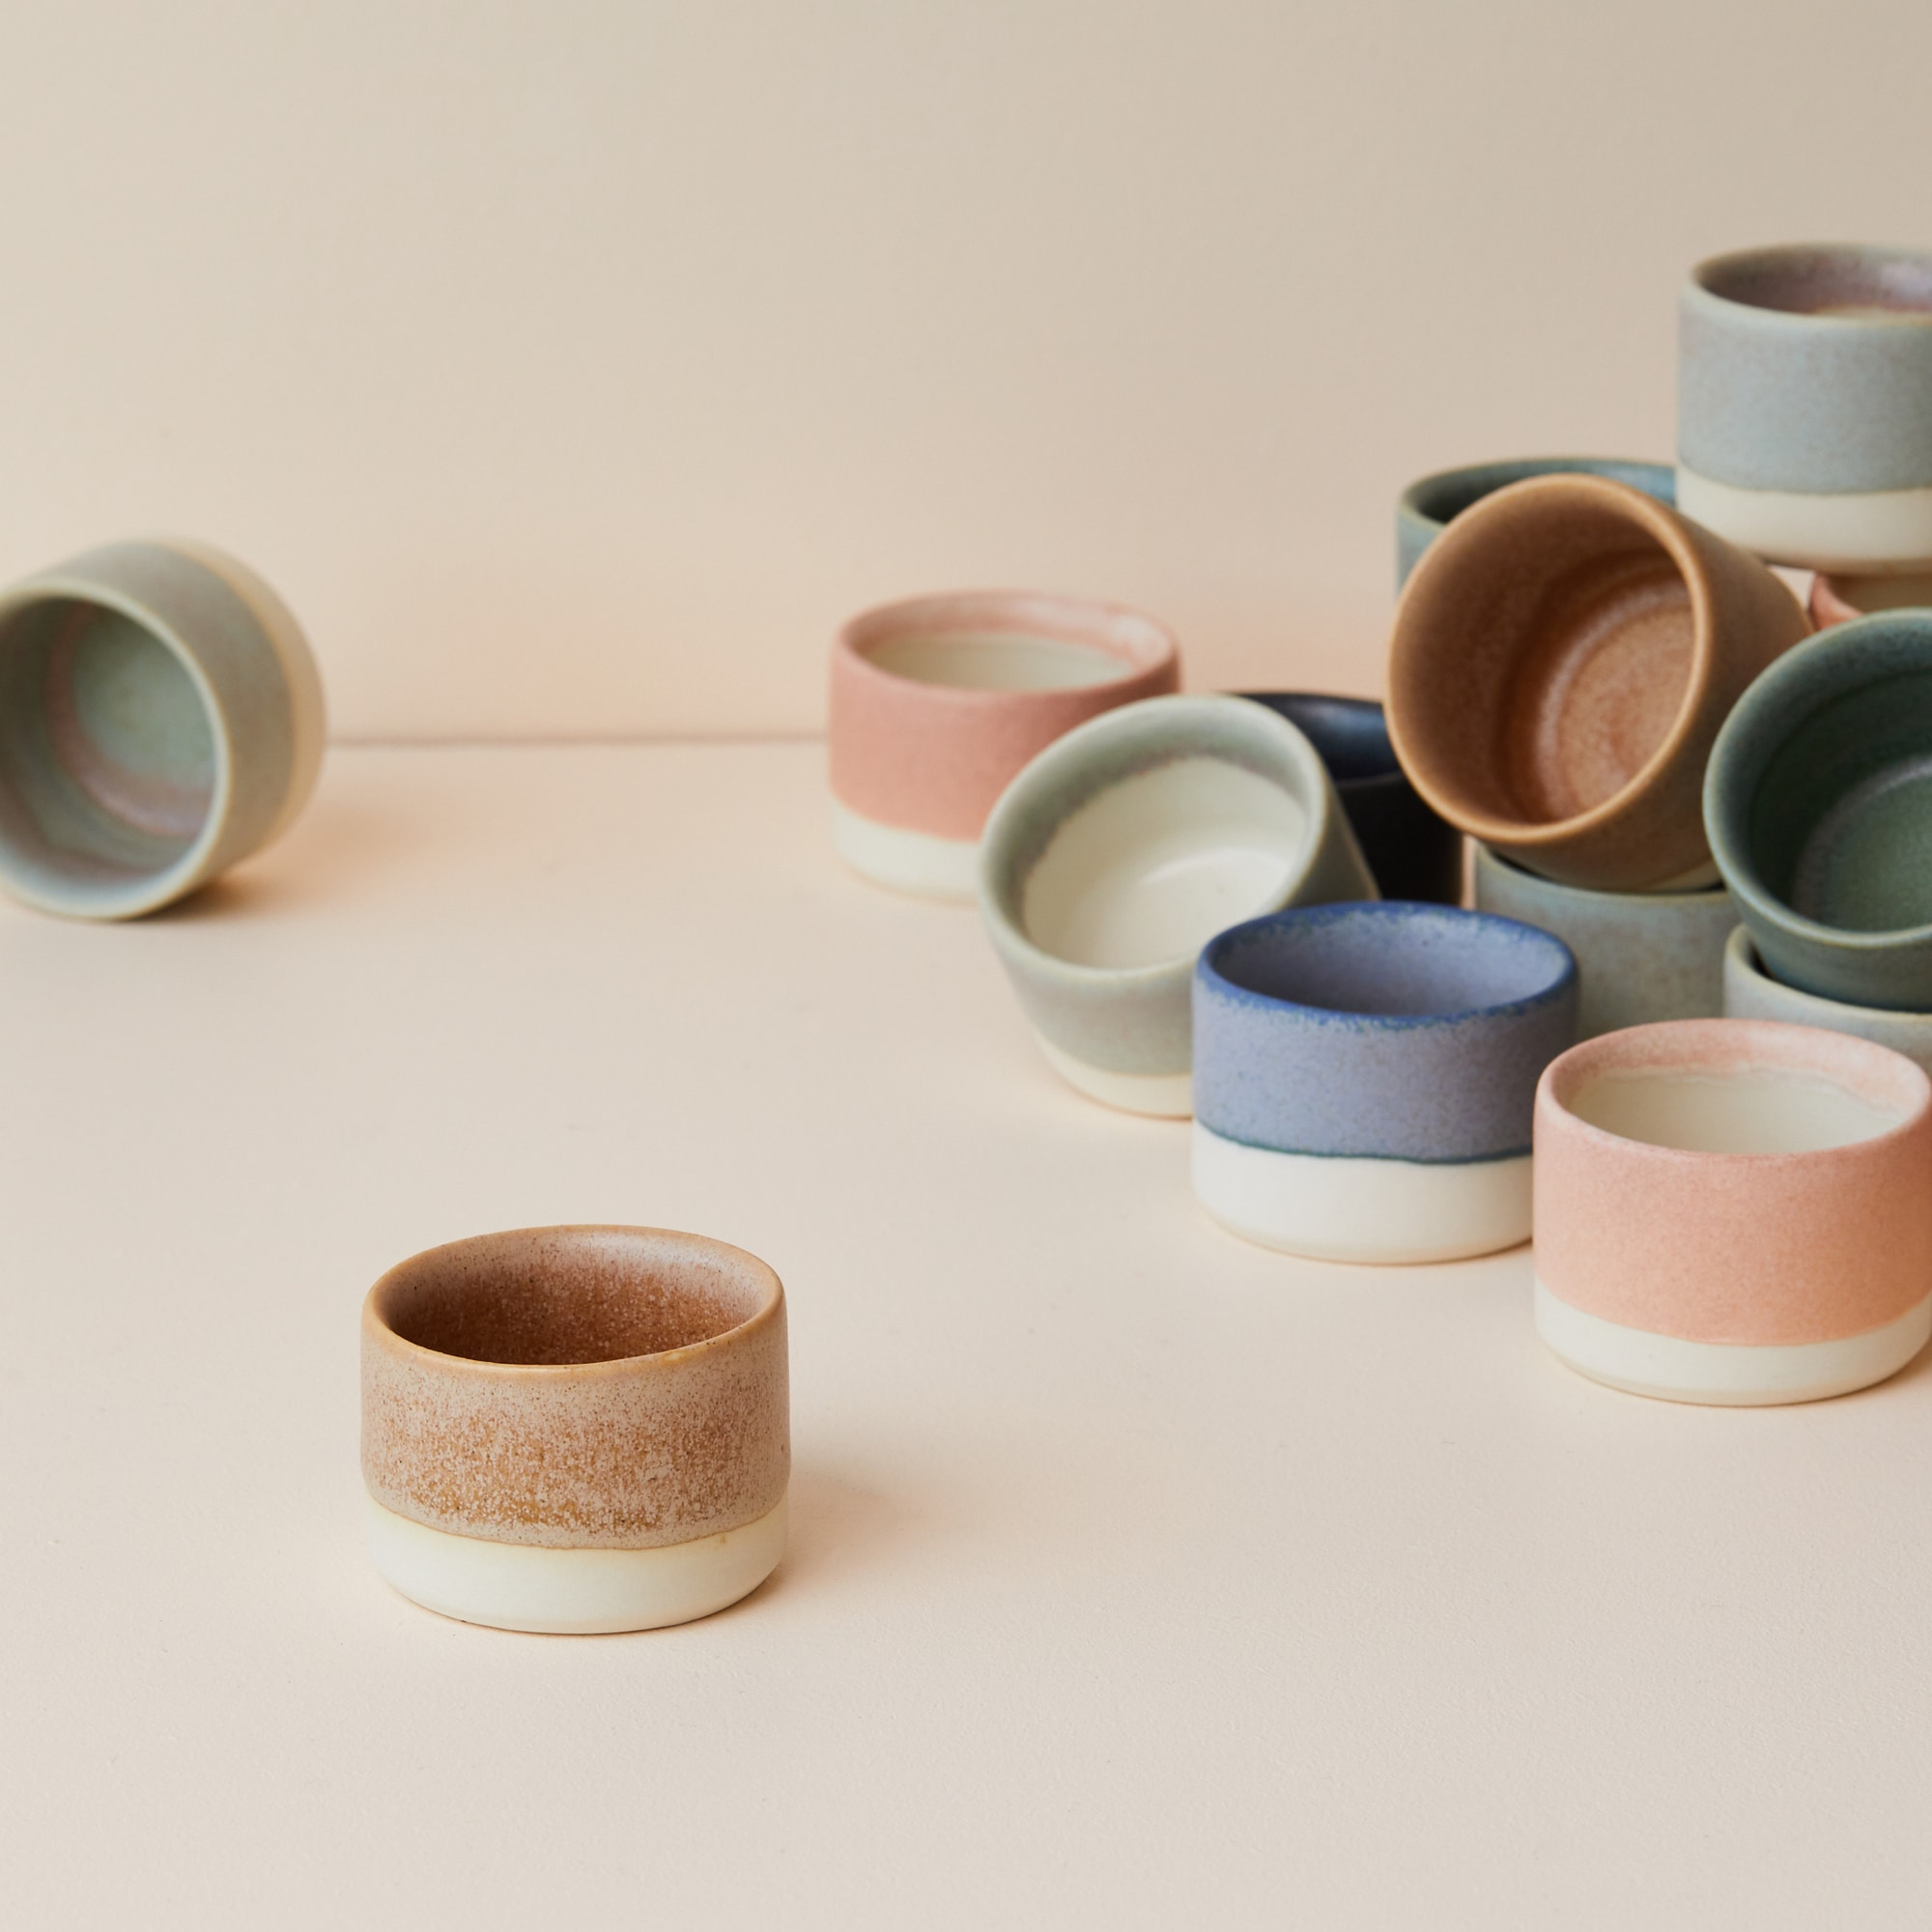 Handmade mini pots or pinch pots stacked from Monsoon Living Newcastle